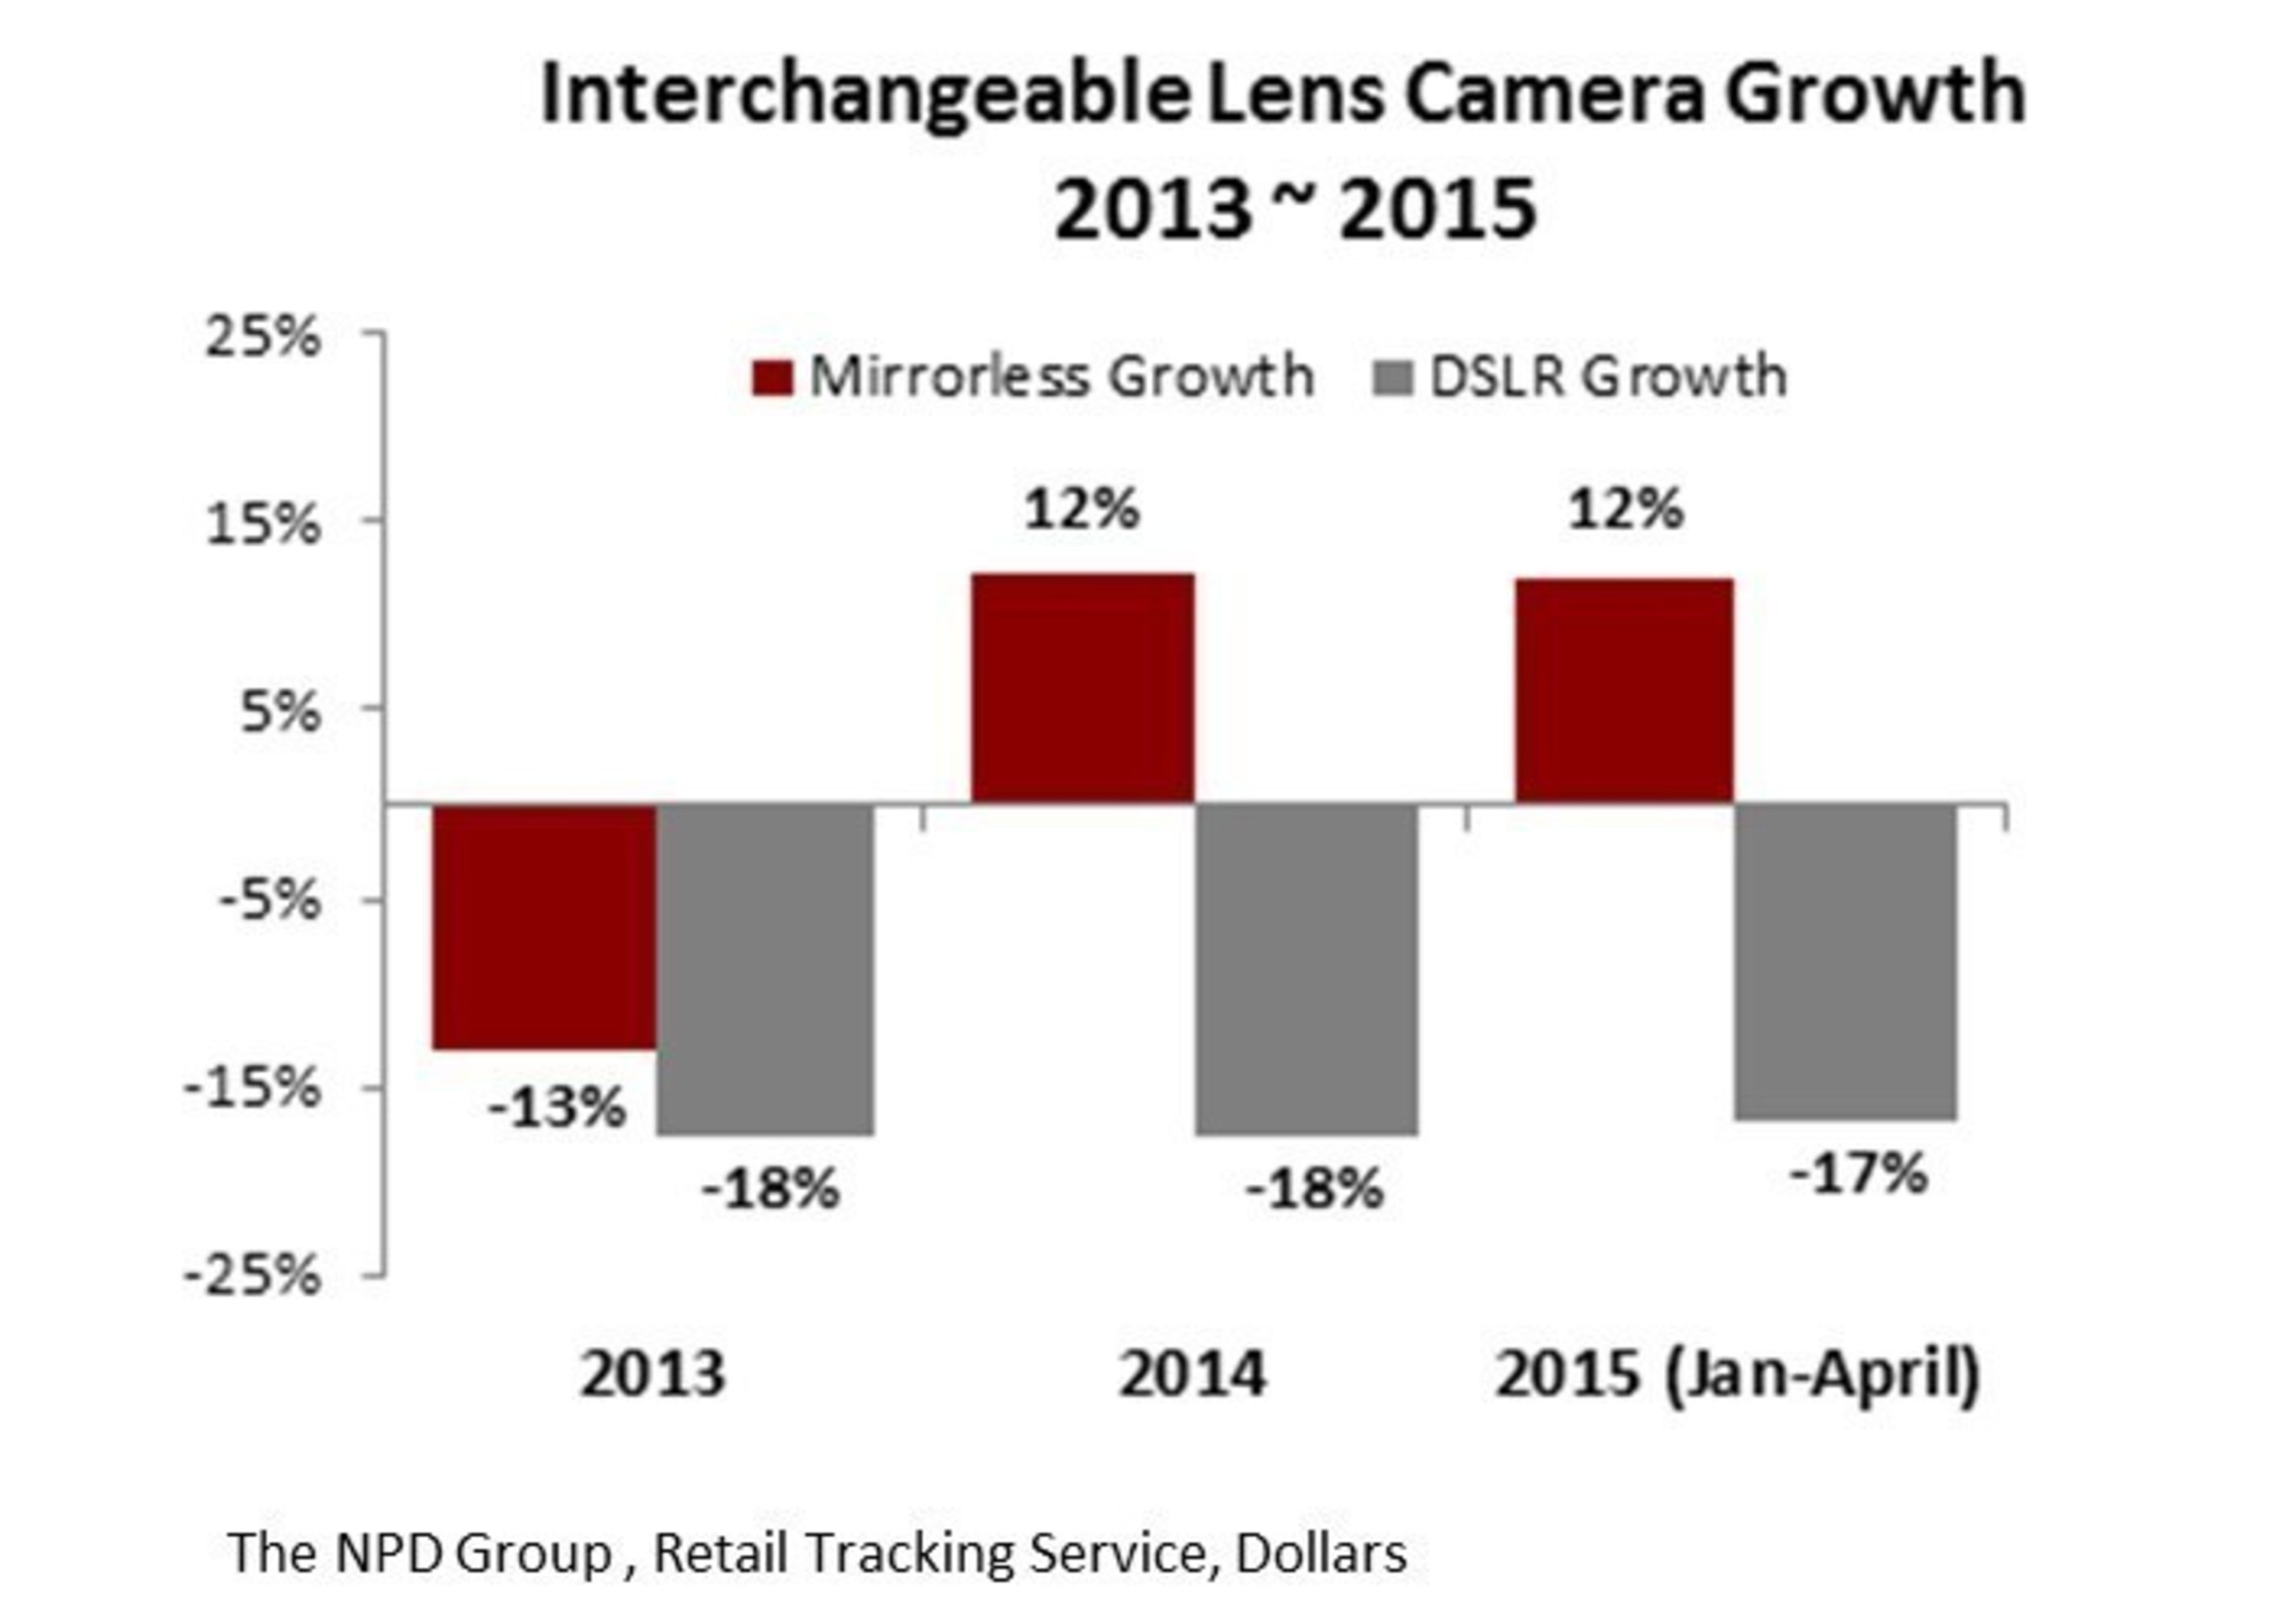 Interchangeable Lens Camera Growth 2013 - 2015